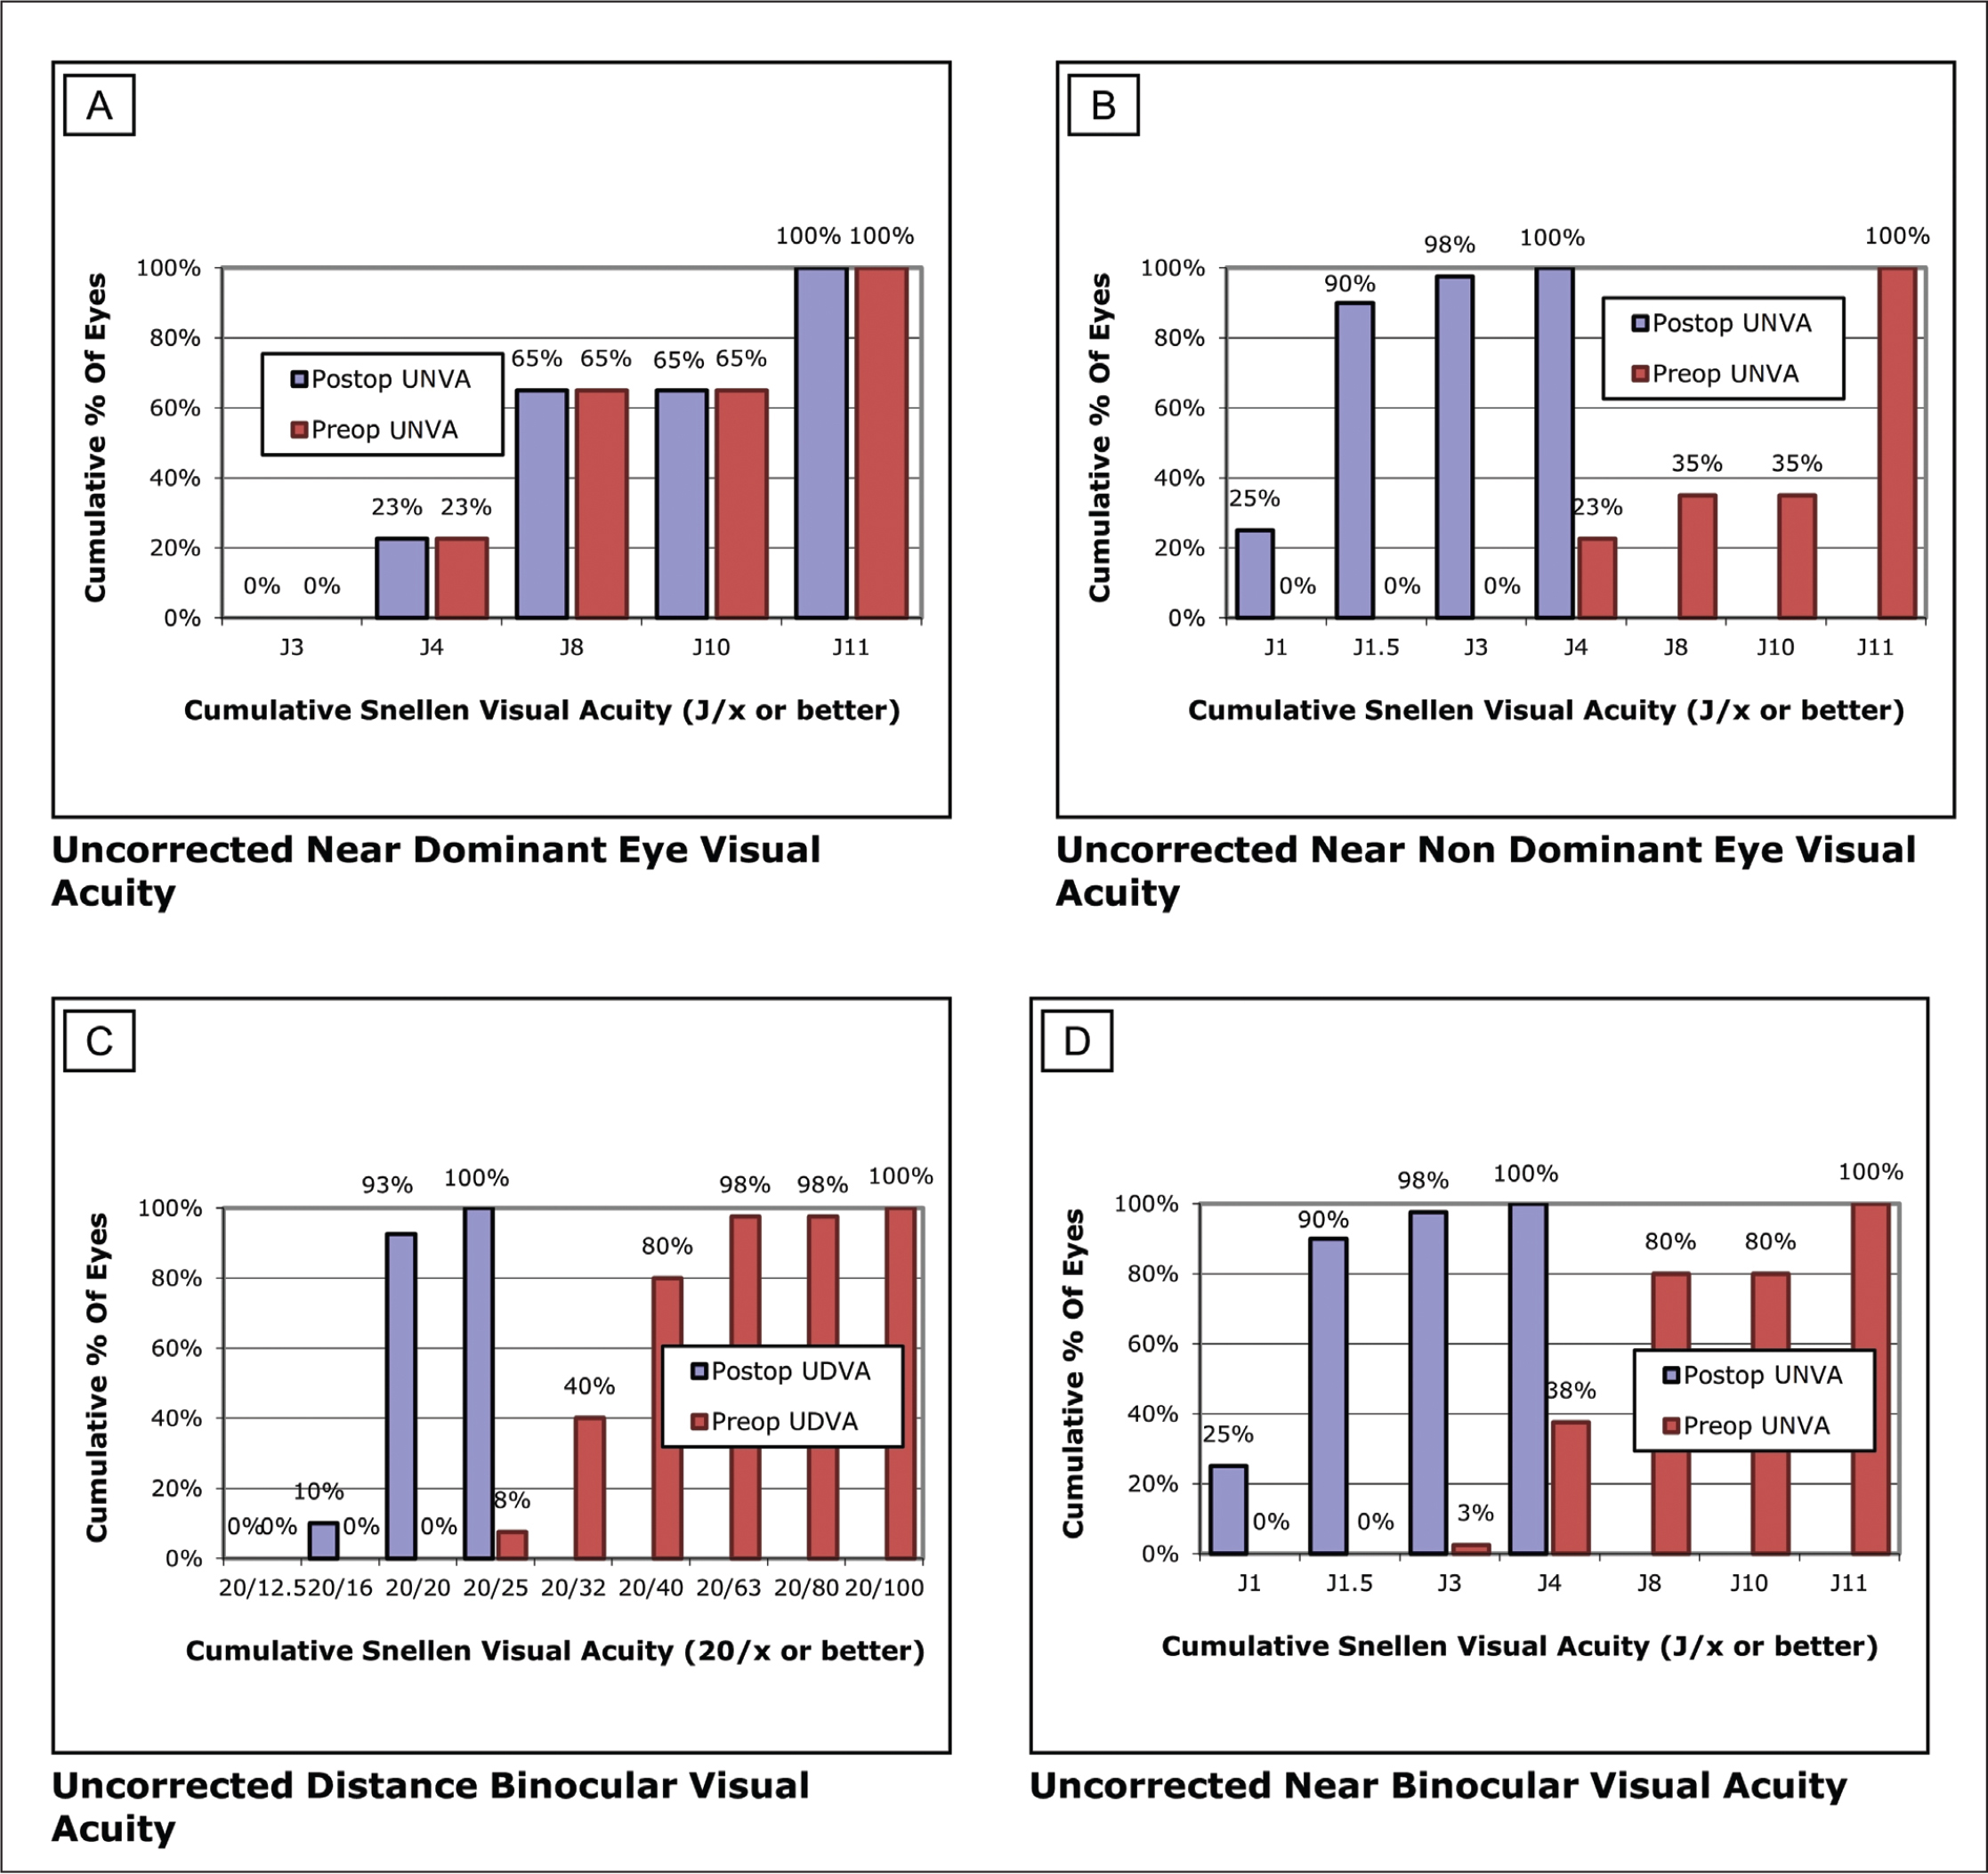 Distance and near complementary visual outcomes for reporting refractive surgery. (A) Near cumulative Jaeger visual acuity (Jx or better) for dominant eye. (B) Near cumulative Jaeger visual acuity (Jx or better) for the non-dominant eye. (C) Distance binocular cumulative visual acuity (20/x or better). (D) Near binocular cumulative visual acuity (Jx or better). D = diopters; UNVA = uncorrected near visual acuity; UDVA = uncorrected distance visual acuity